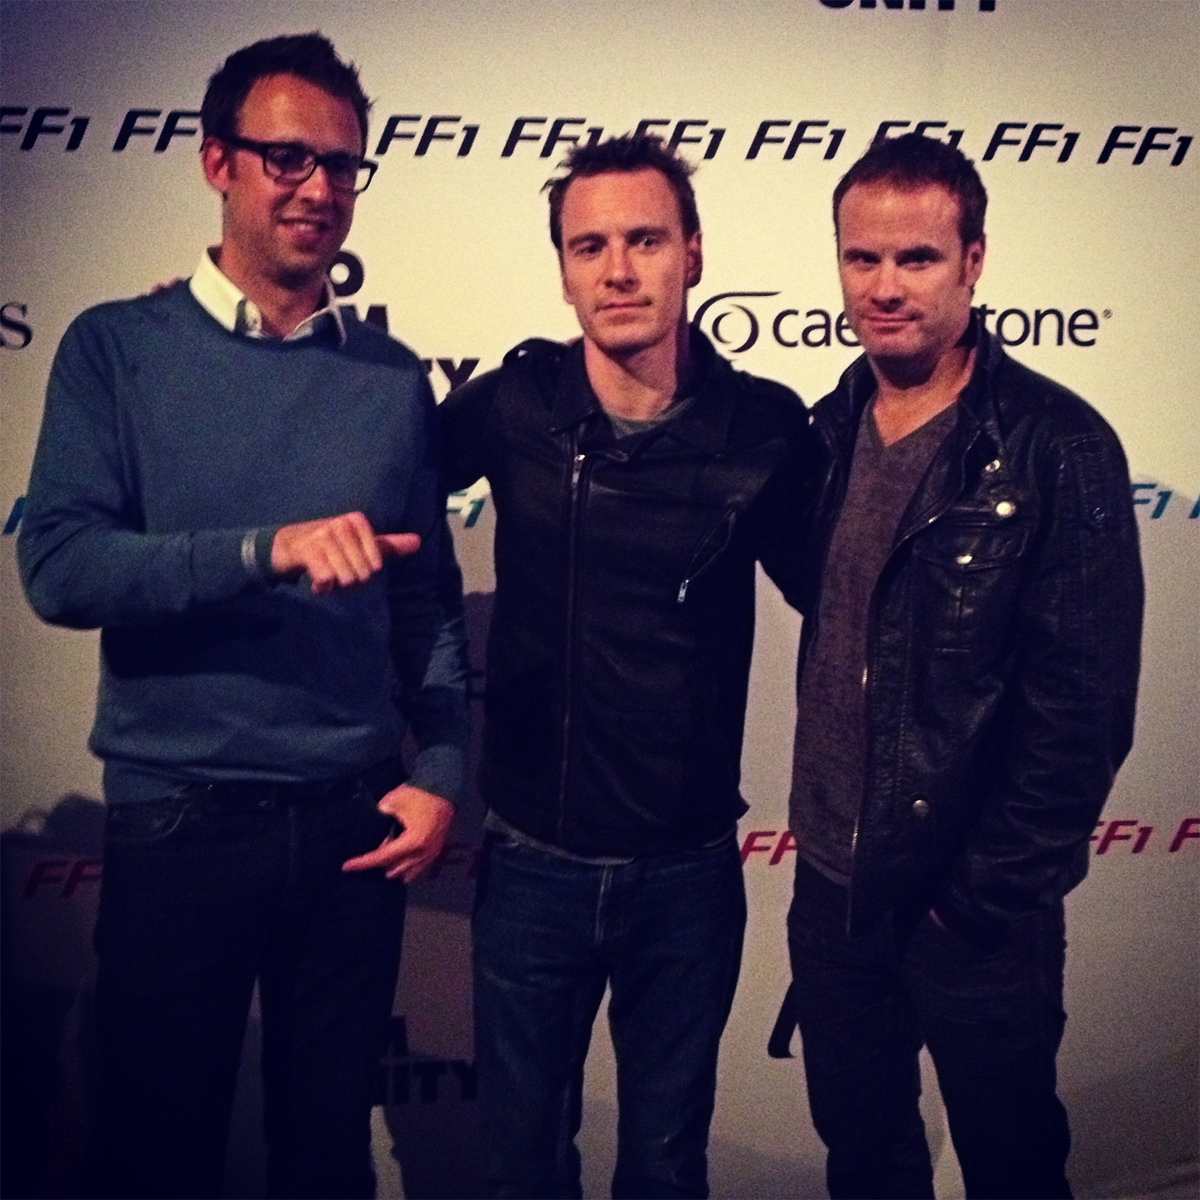 m11-mixte-etait-la-evenement-ff1-michael-fassbender